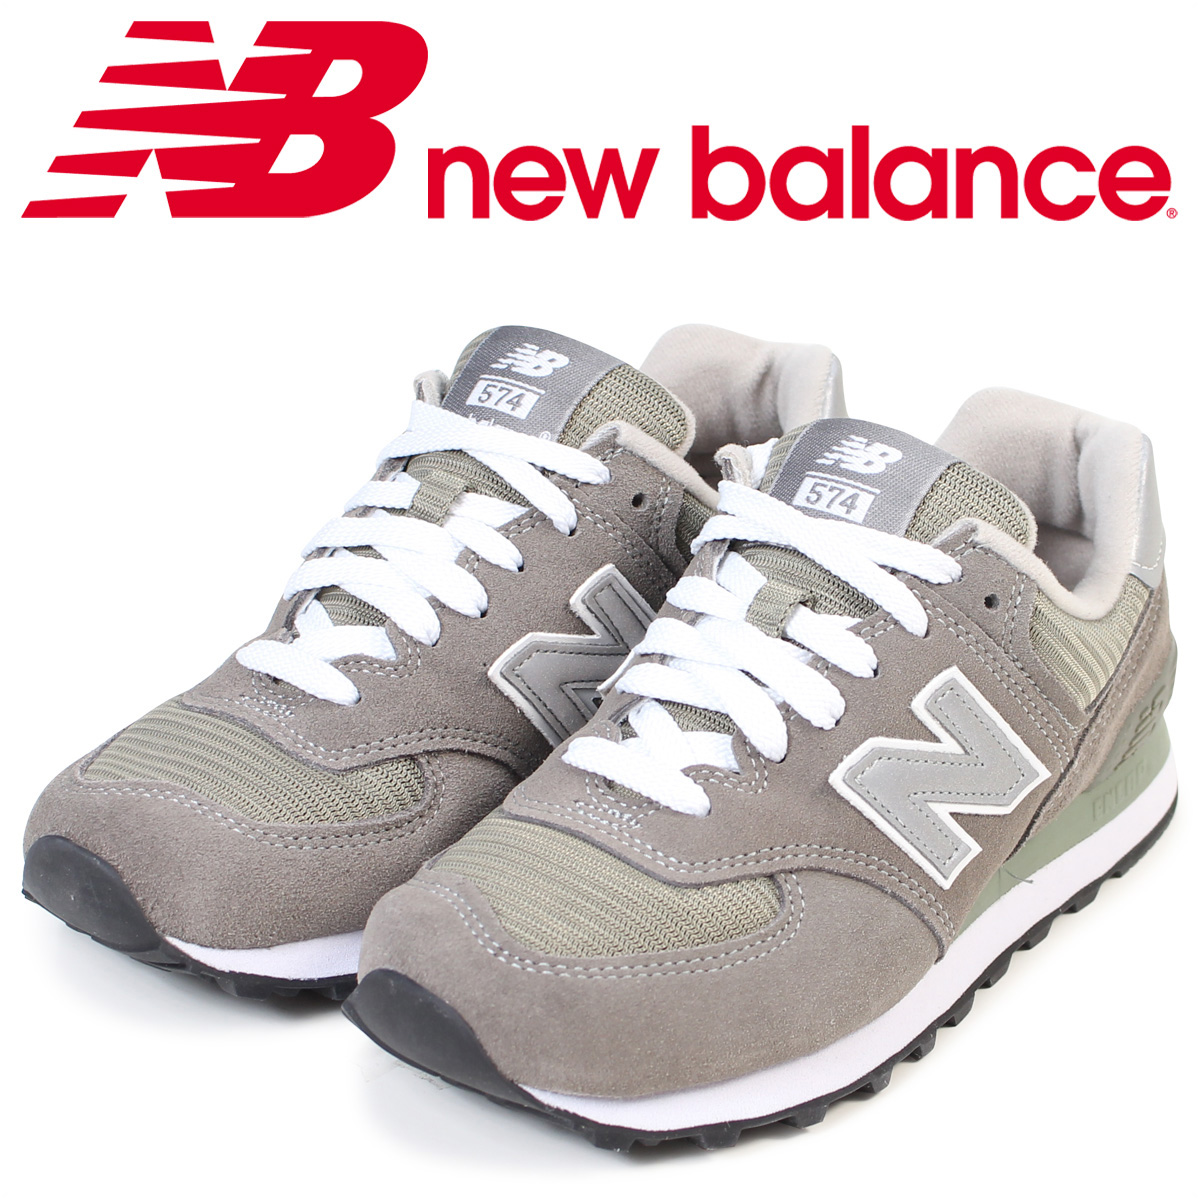 timeless design 3054d 1c1a3 new balance New Balance 574 Lady's sneakers W574GS B Wise D Wise men shoes  gray